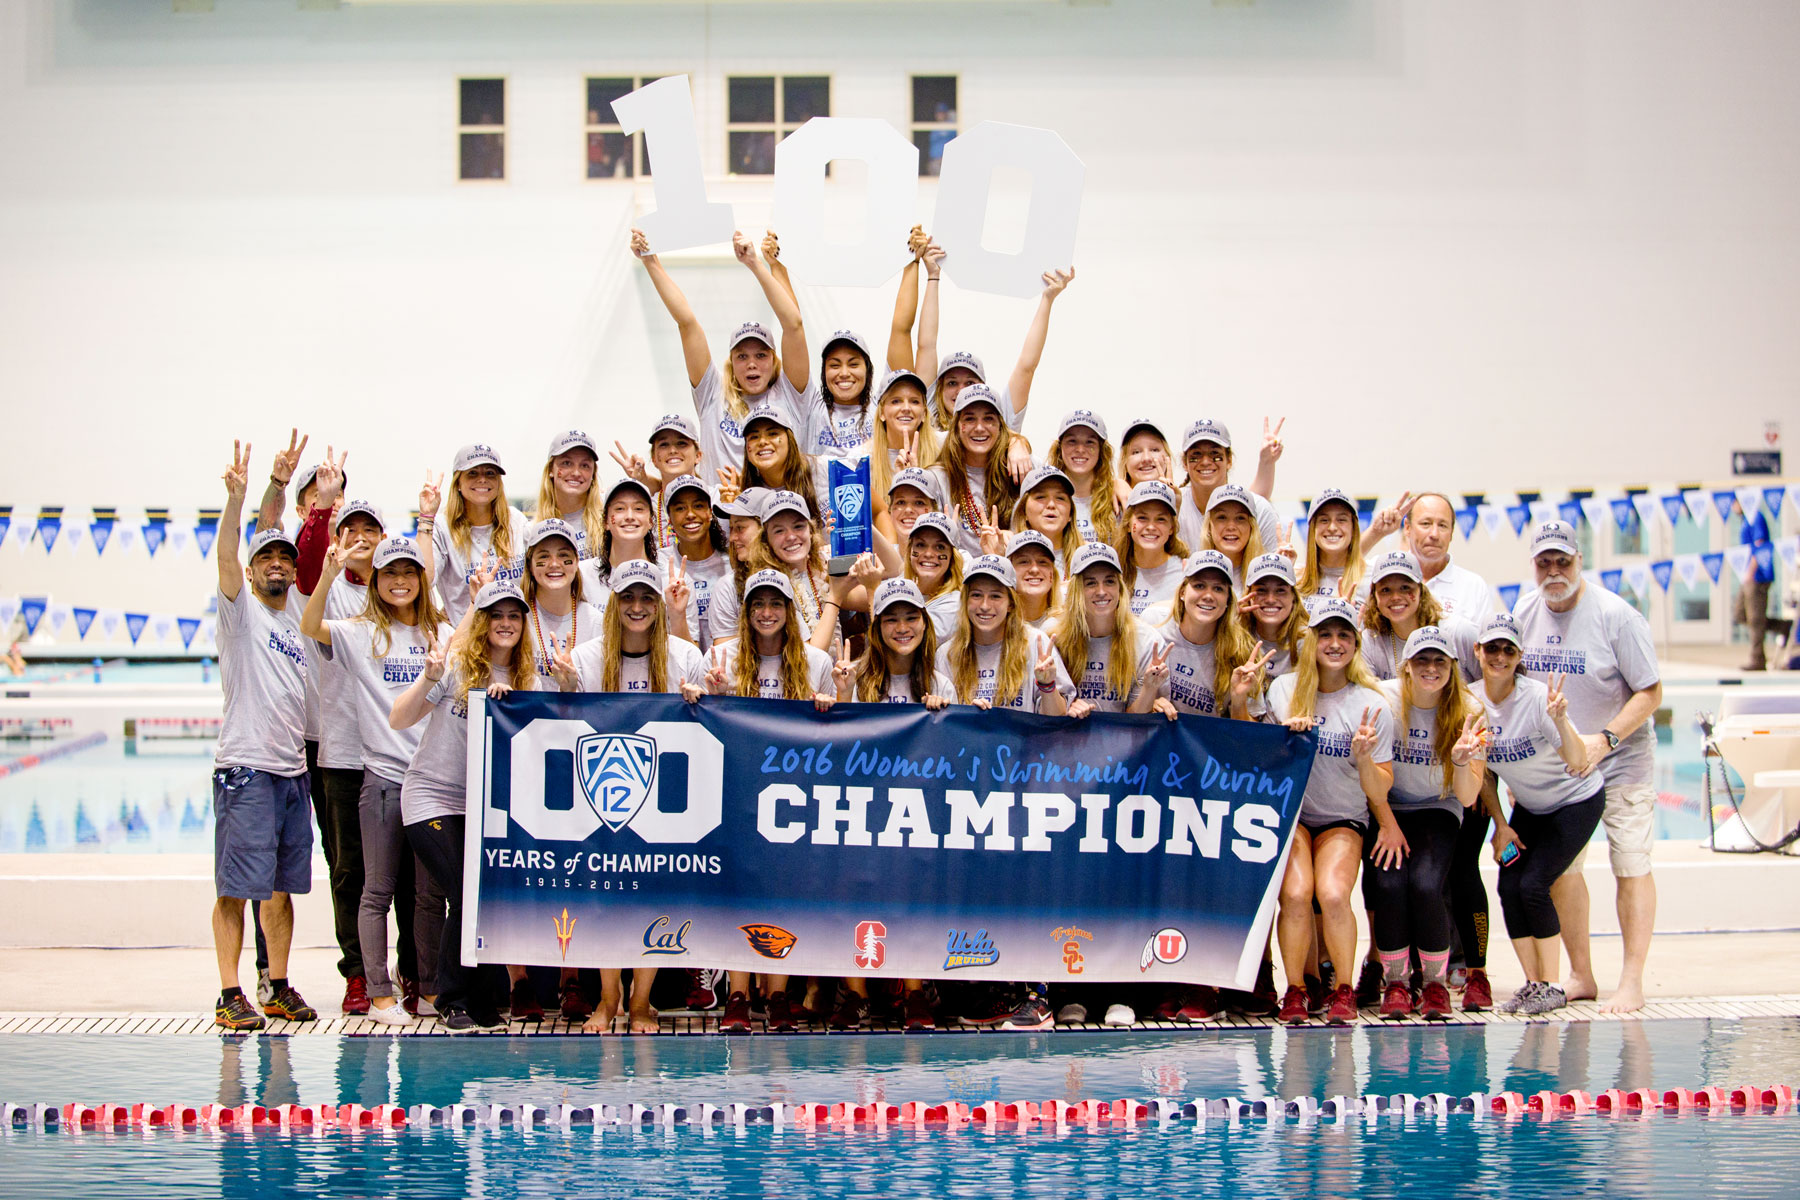 women's swim team photo